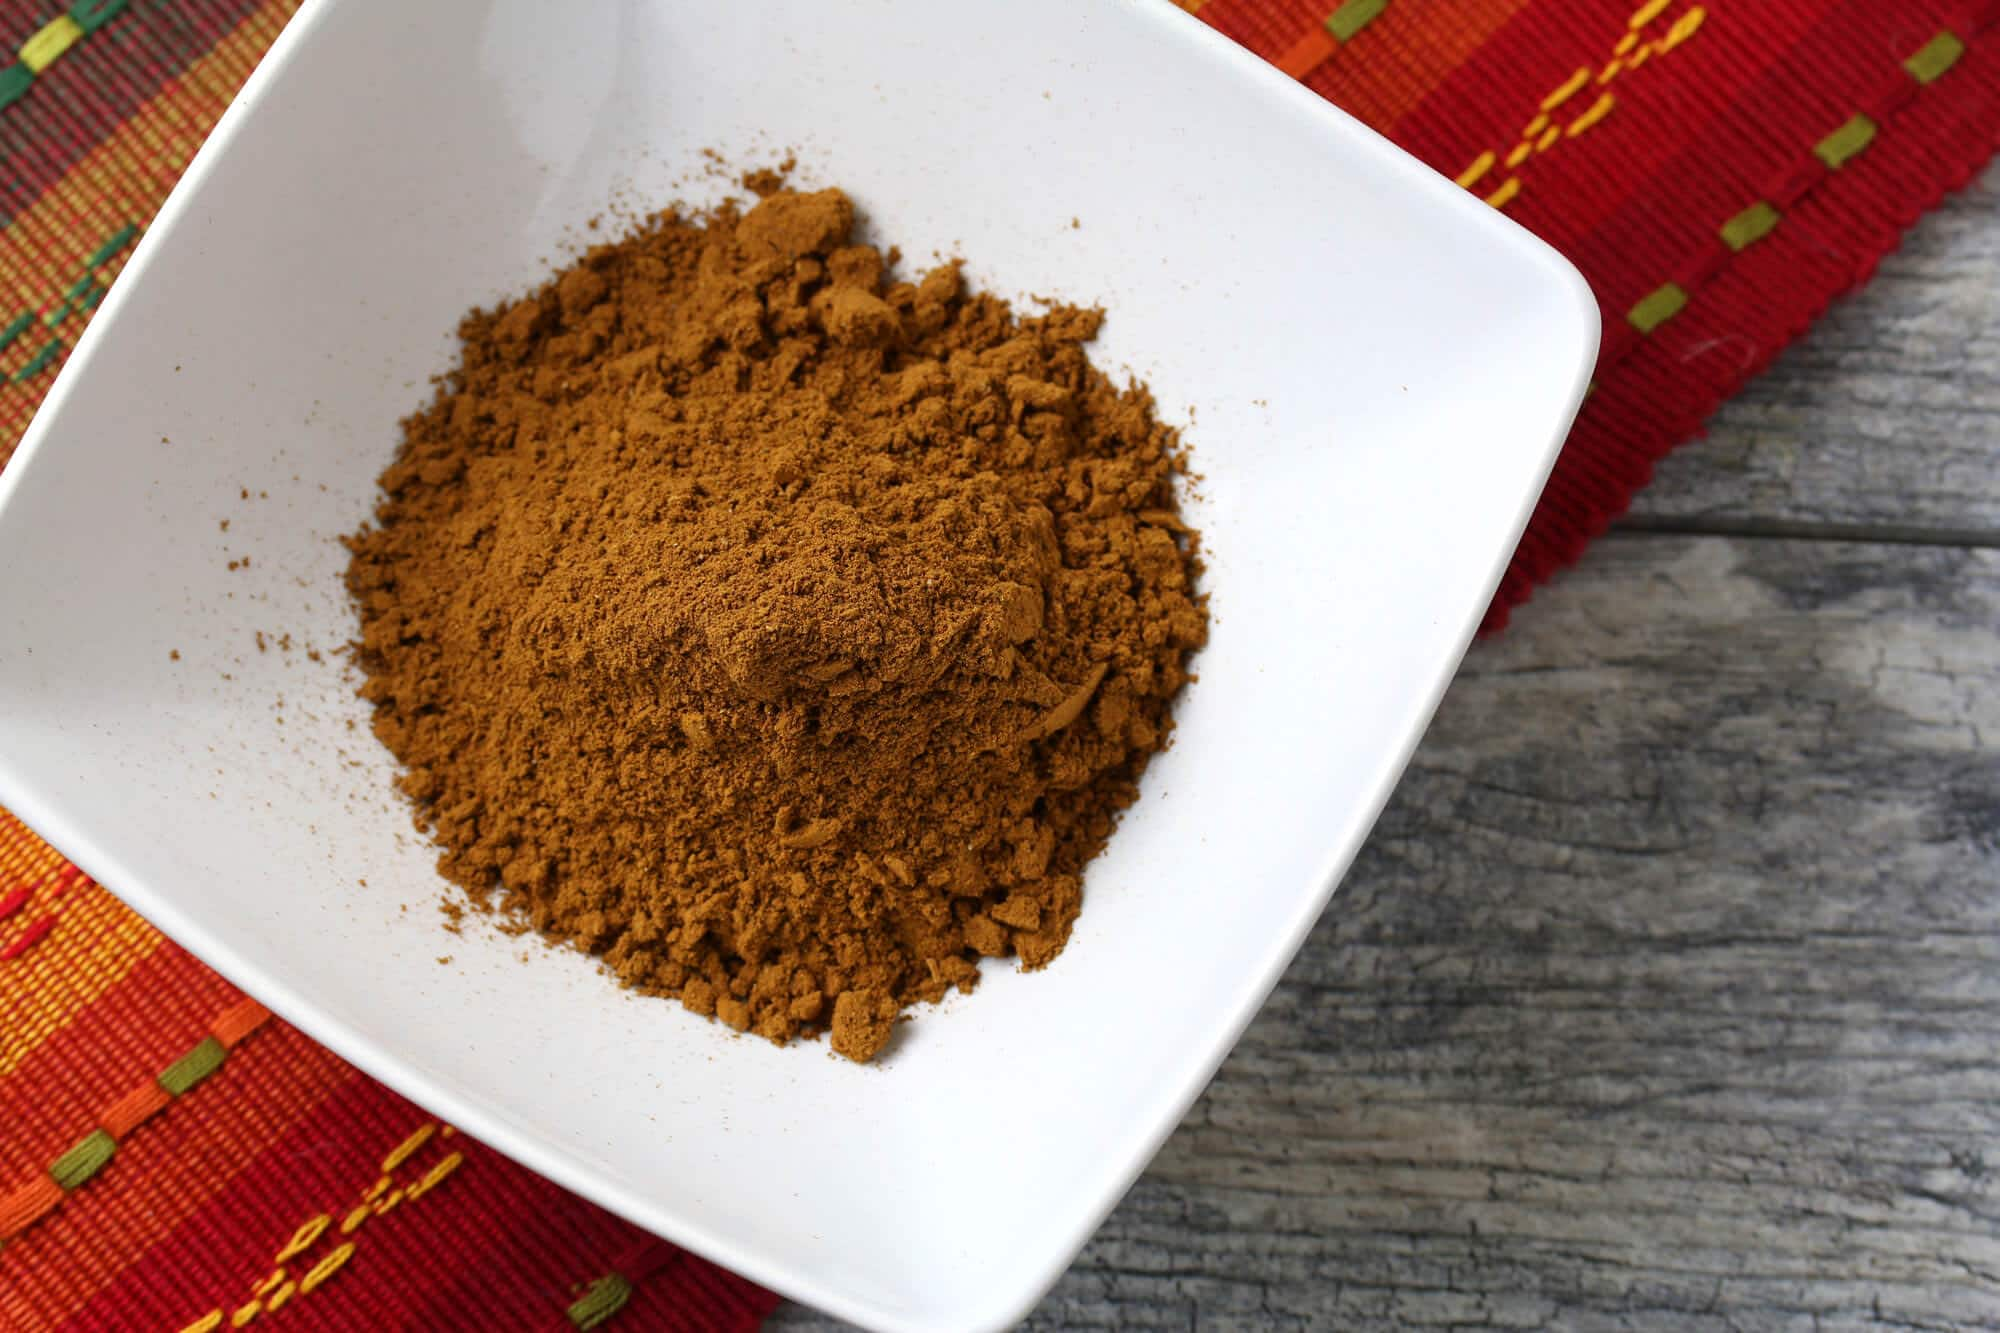 lebkuchengewurz recipe authentic rezept german gingerbread spice blend